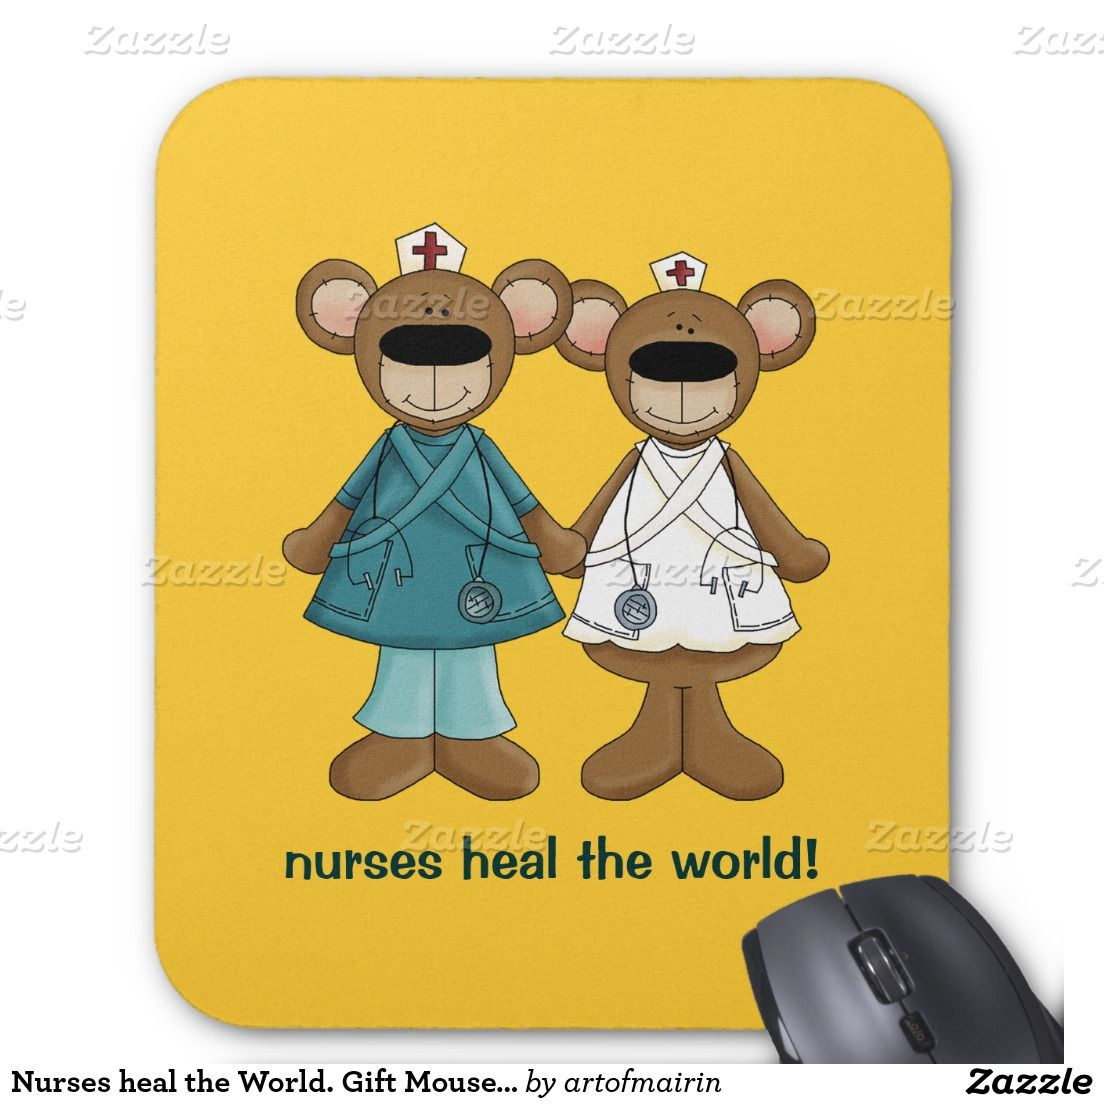 Nurses heal the World. Funny Teddy Bears design Happy Nurses Week / Happy Nurses Day / Thank You Nurse / Nurse's Birthday / Graduation from Nursing School / Any occasion Gift Mousepads for Nurses. Matching cards in various languages , postage stamps and other products available in the Business Related Holidays / Healthcare Category of the artofmairin store at zazzle.com